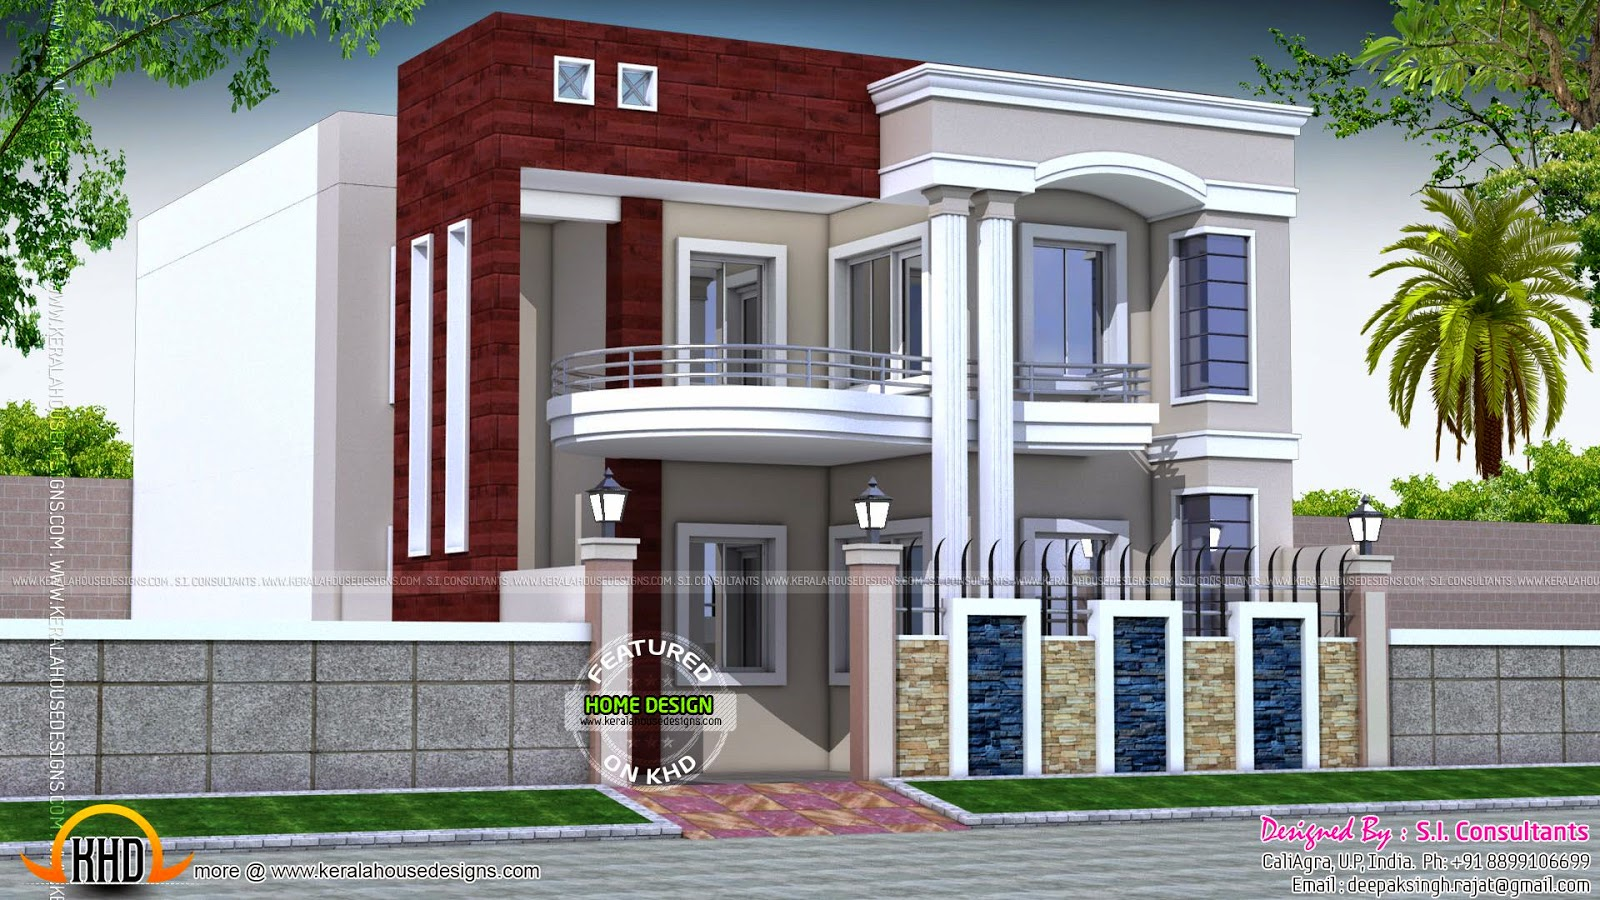 House design in north india kerala home design and floor House designs indian style pictures